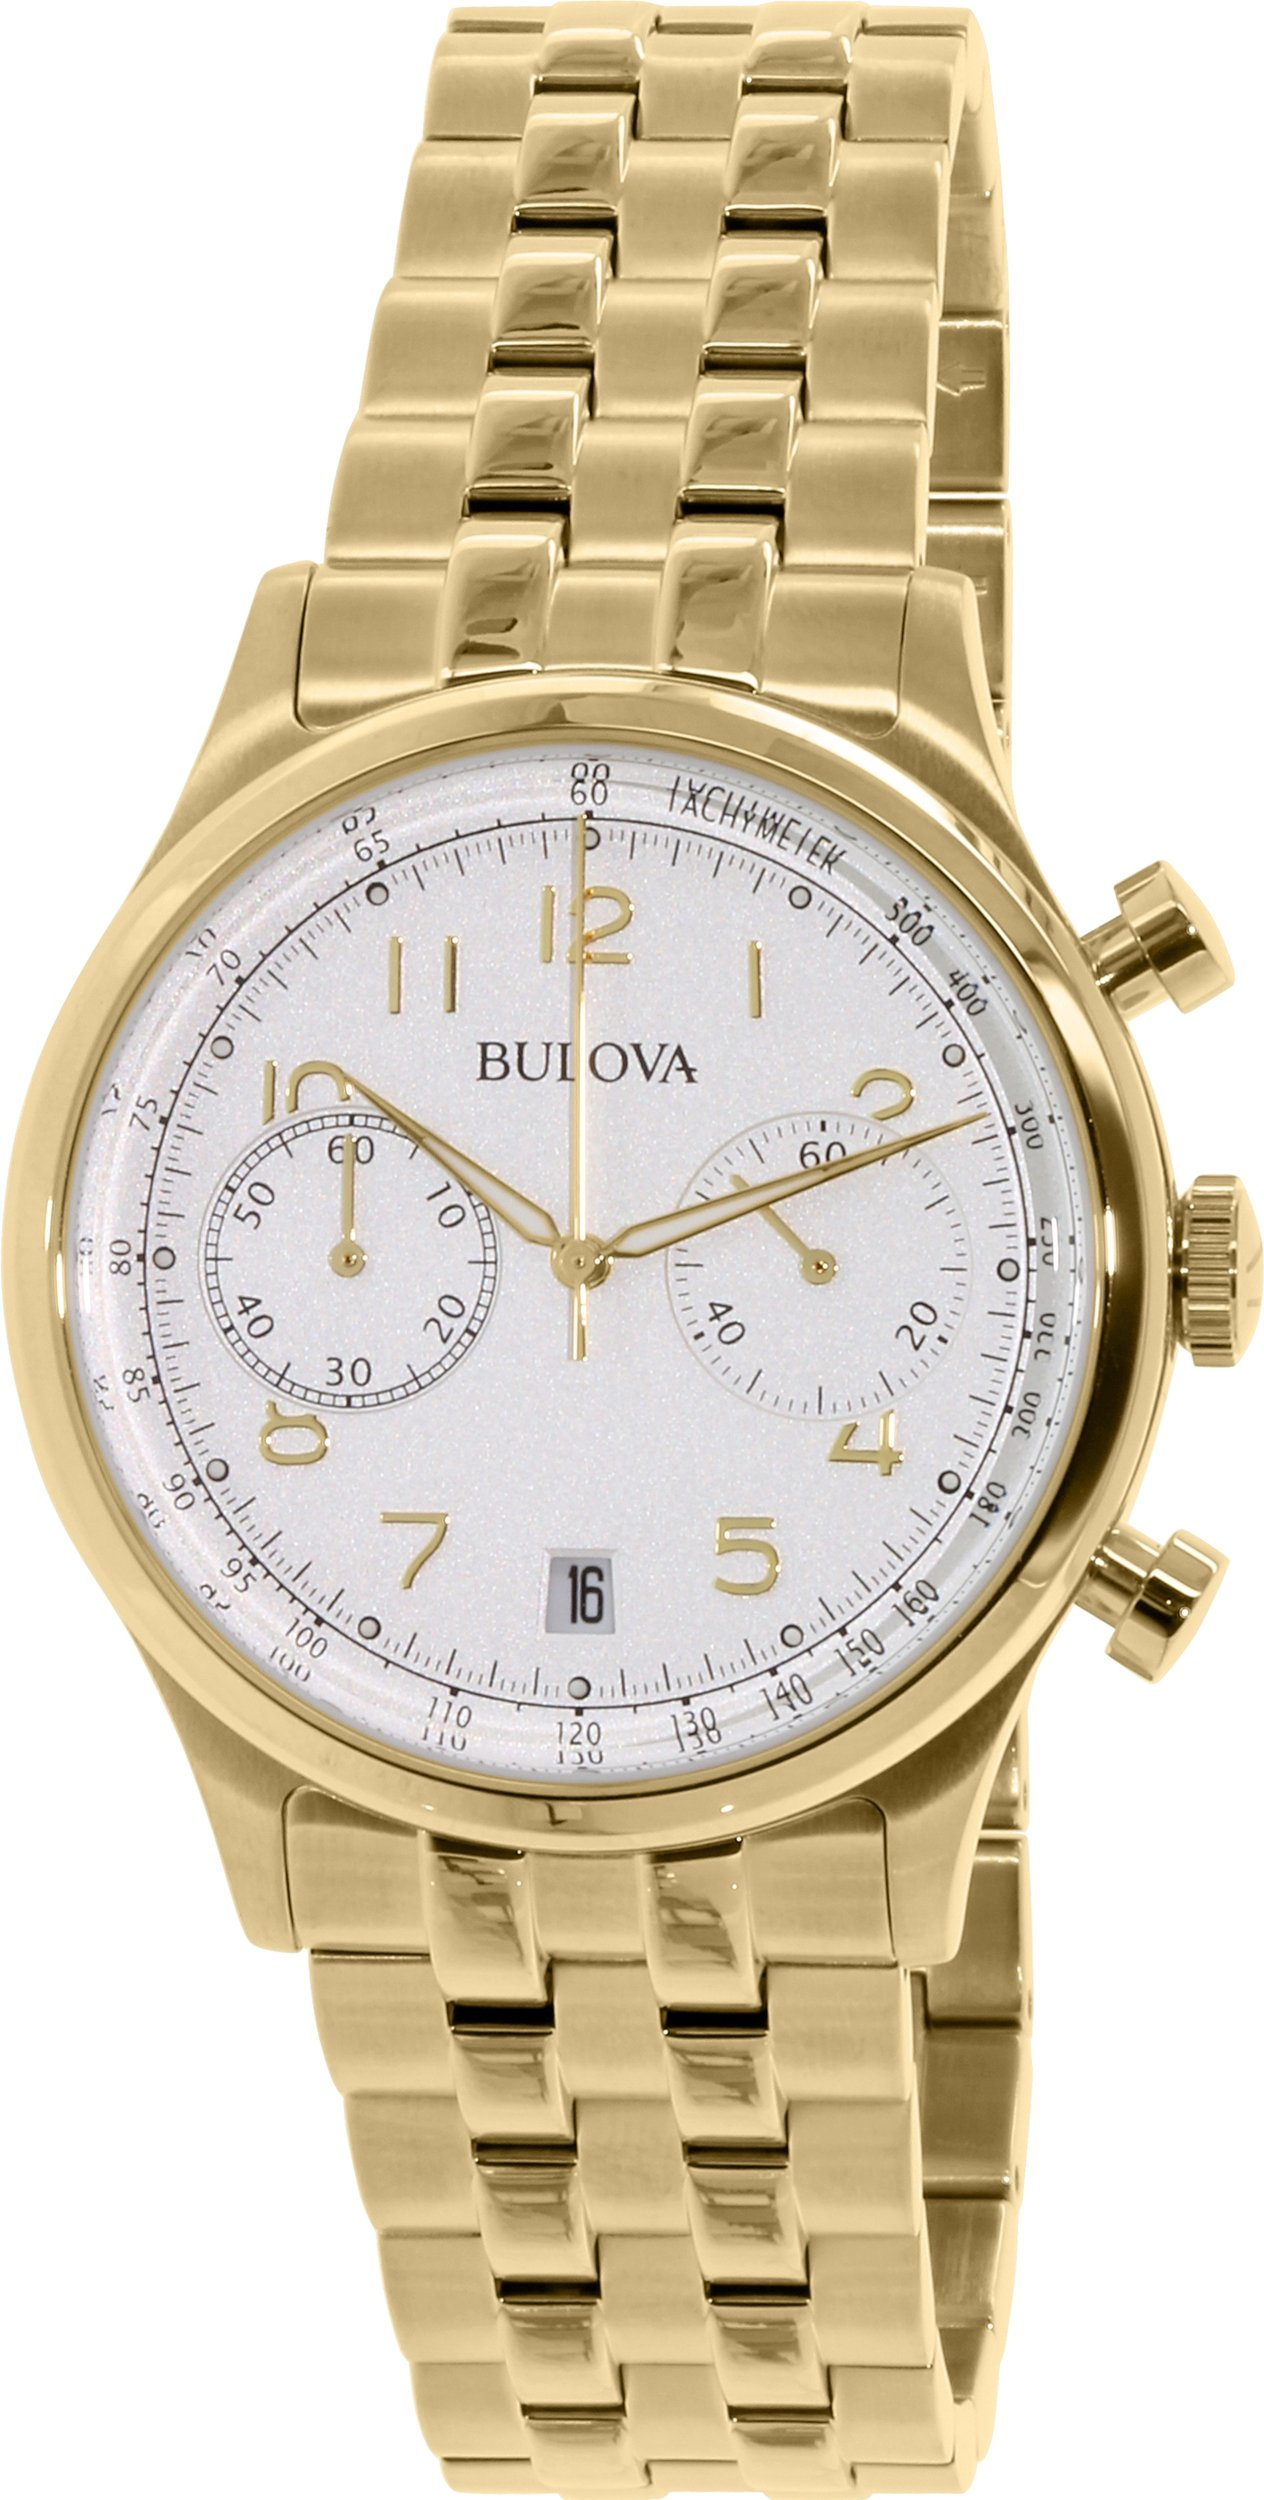 Bulova 97B149 Bulova Classic 2Reg Chronograph Gold Tone Silver Dial Dress Watch